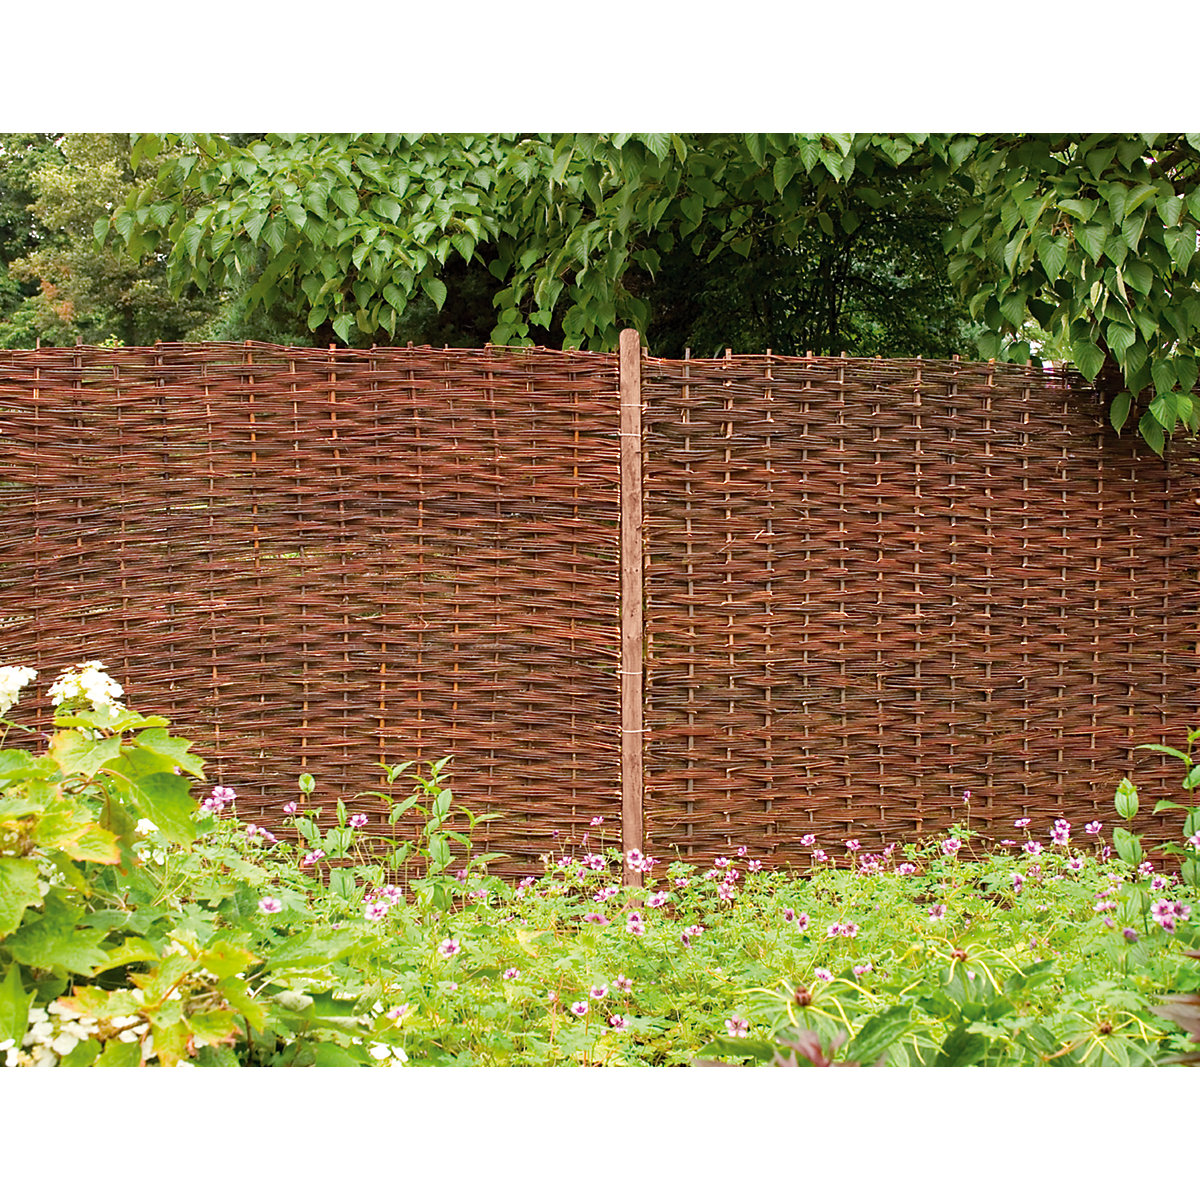 Forest Garden Woven Willow Fence Screen 1800mm x 1800mm - 6 ft x 6 ...